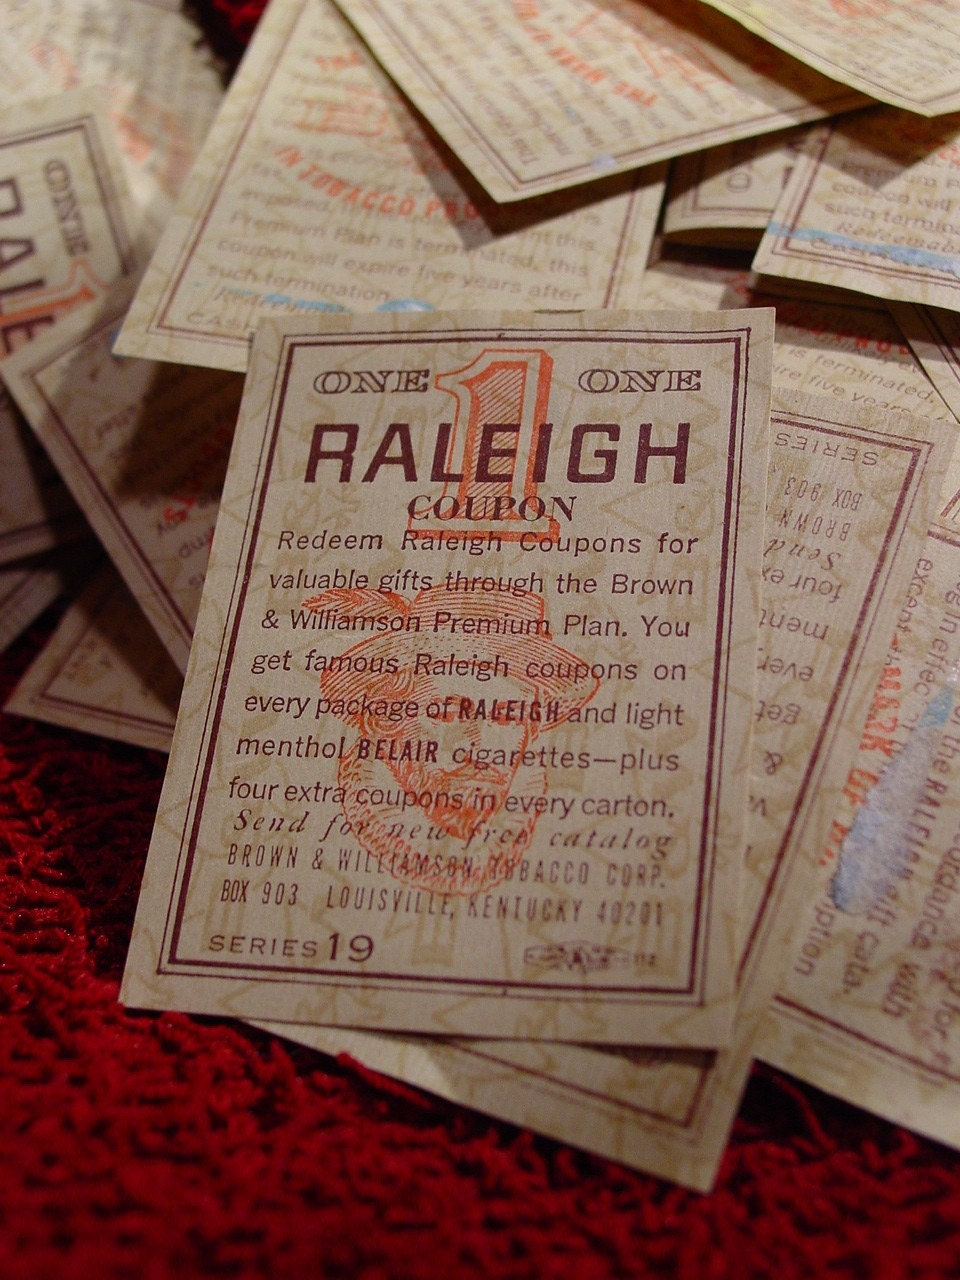 printable cigarette coupons 118 vintage raleigh cigarette coupons for by goodlookinvintage 24062 | il fullxfull.20649201